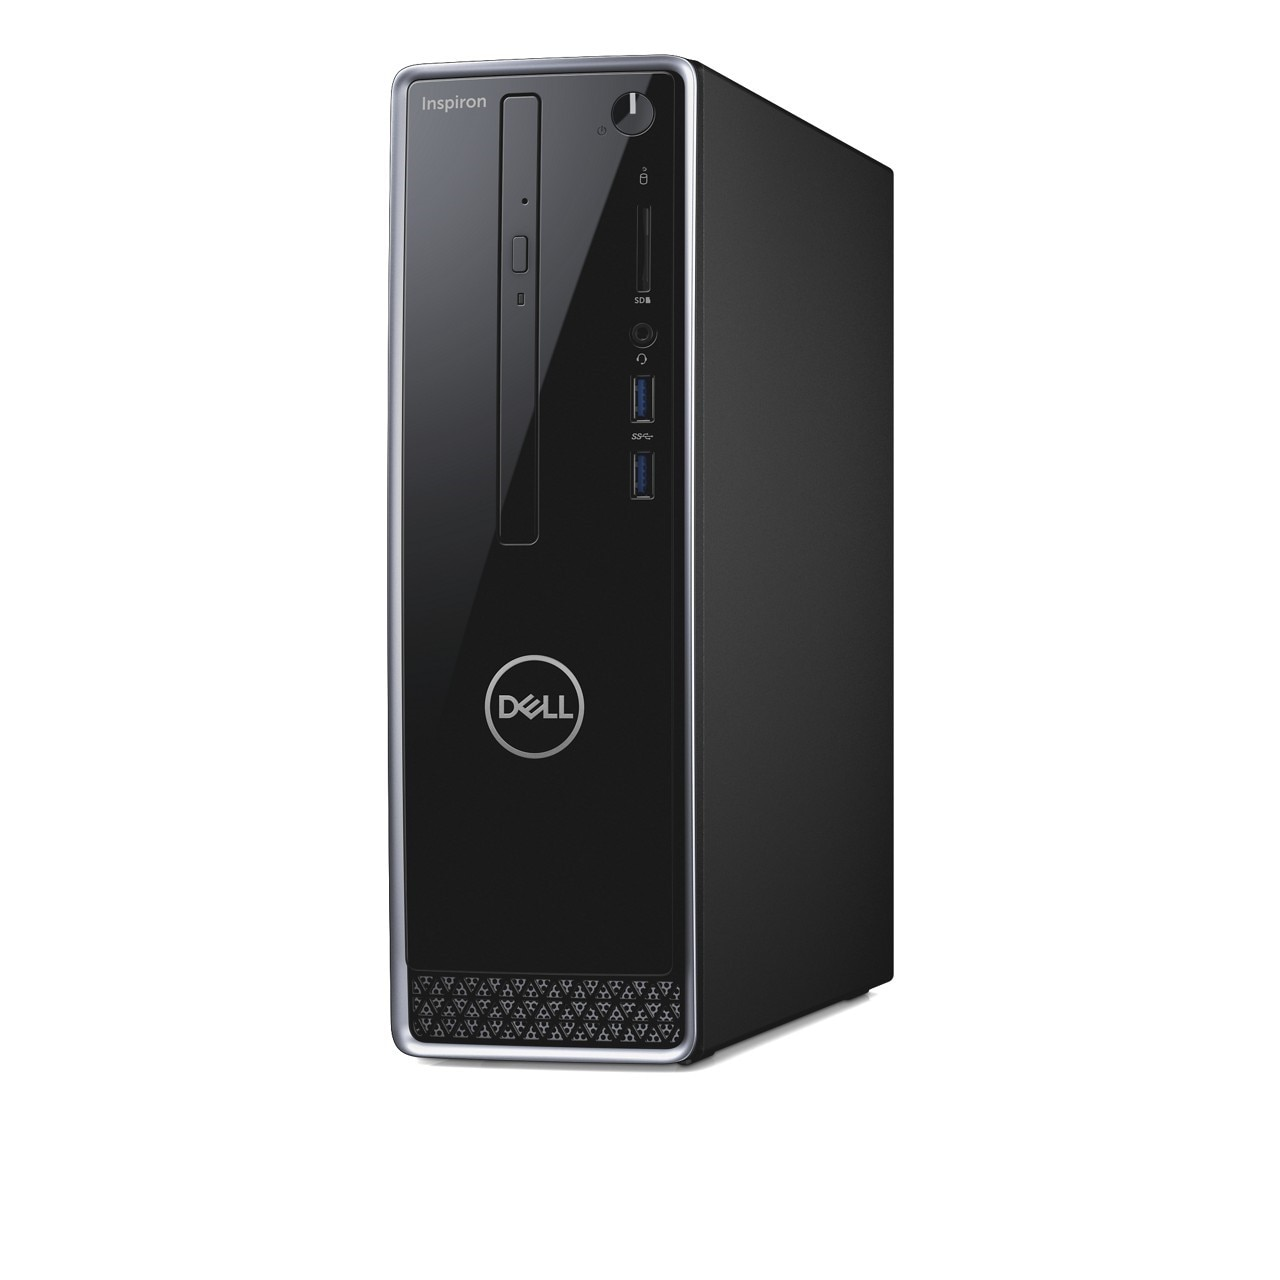 Inspiron 3472 Small Desktop